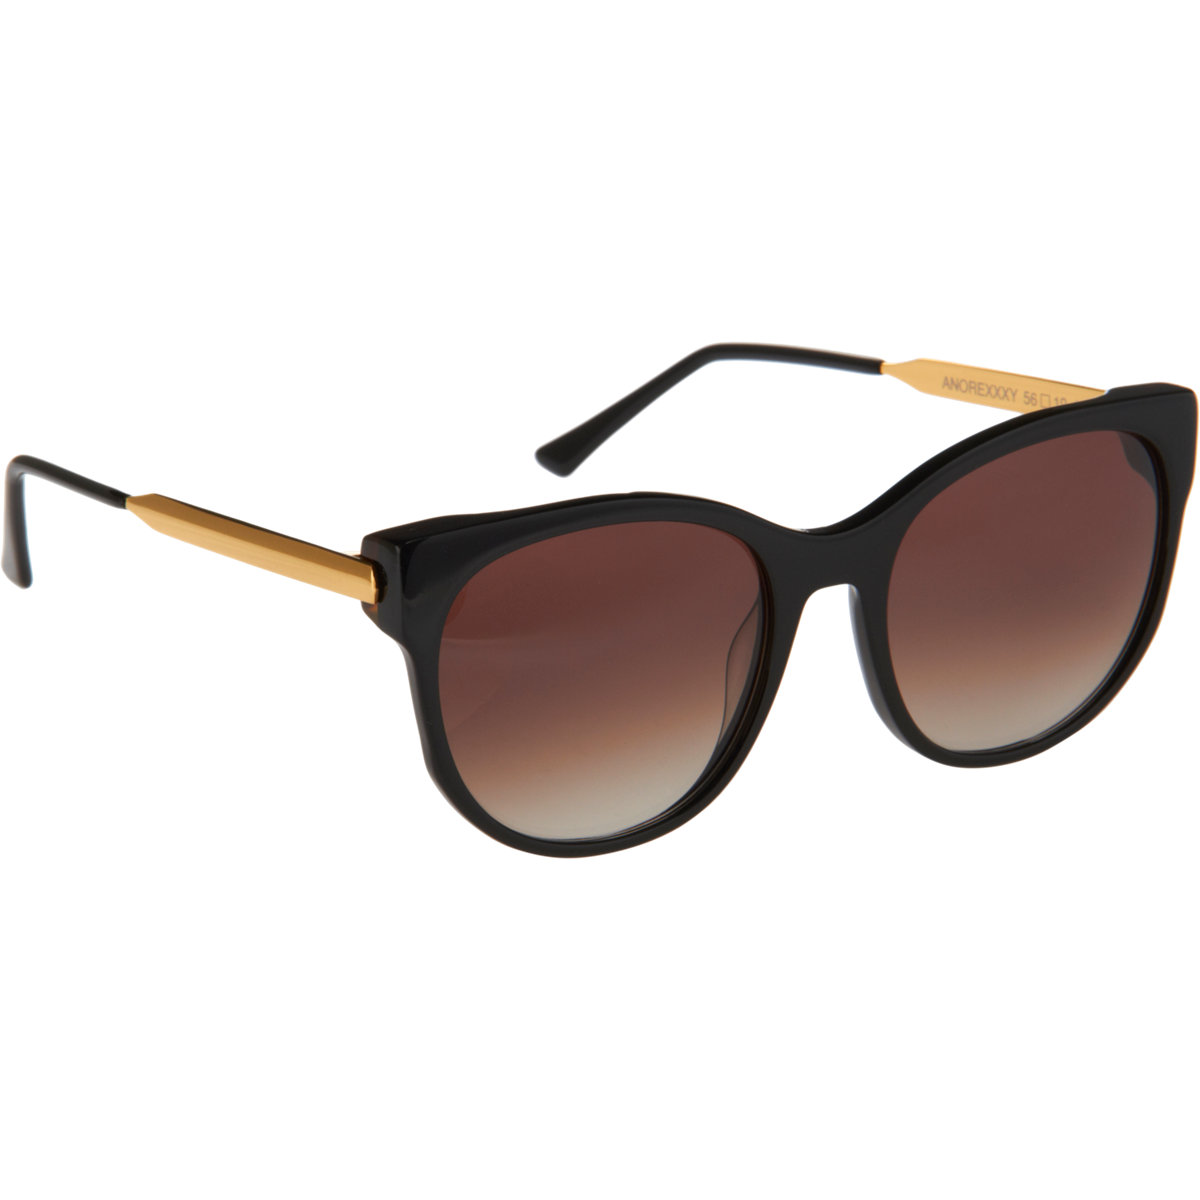 Thierry lasry anorexxxy shiny black/gradient brown at barneys.com